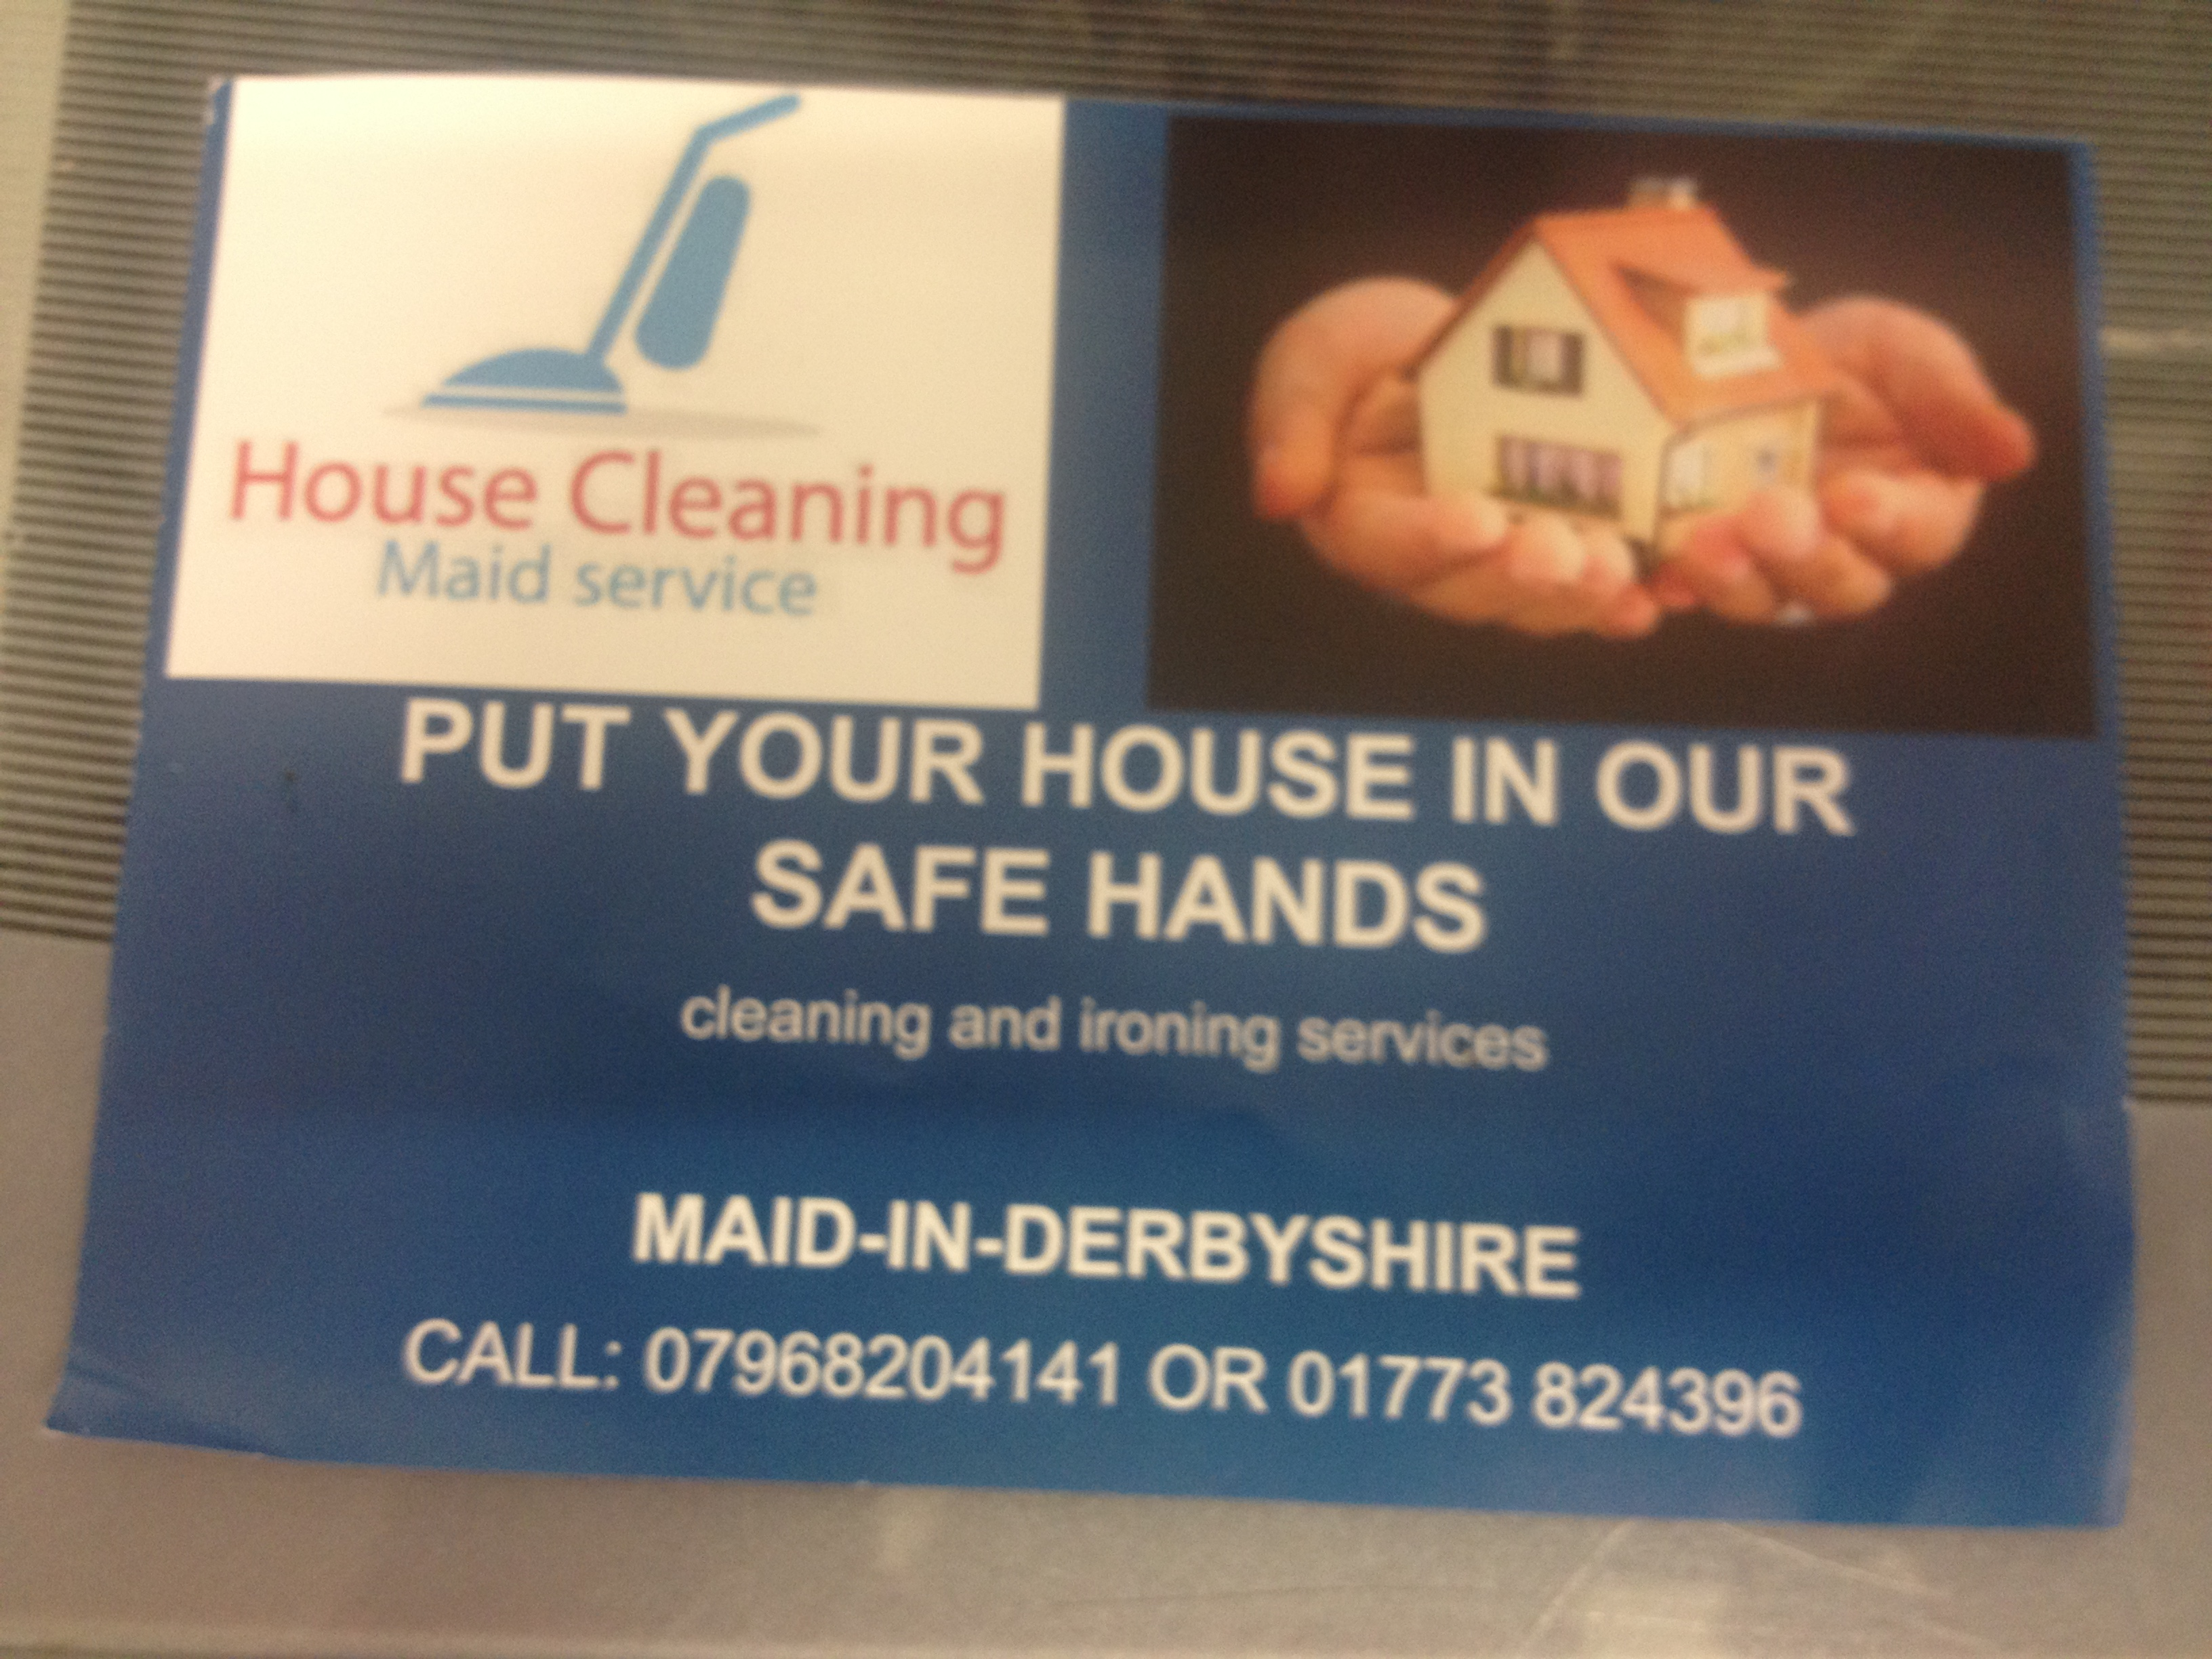 Maid in Derbyshire Cleaning Services on Inter Search